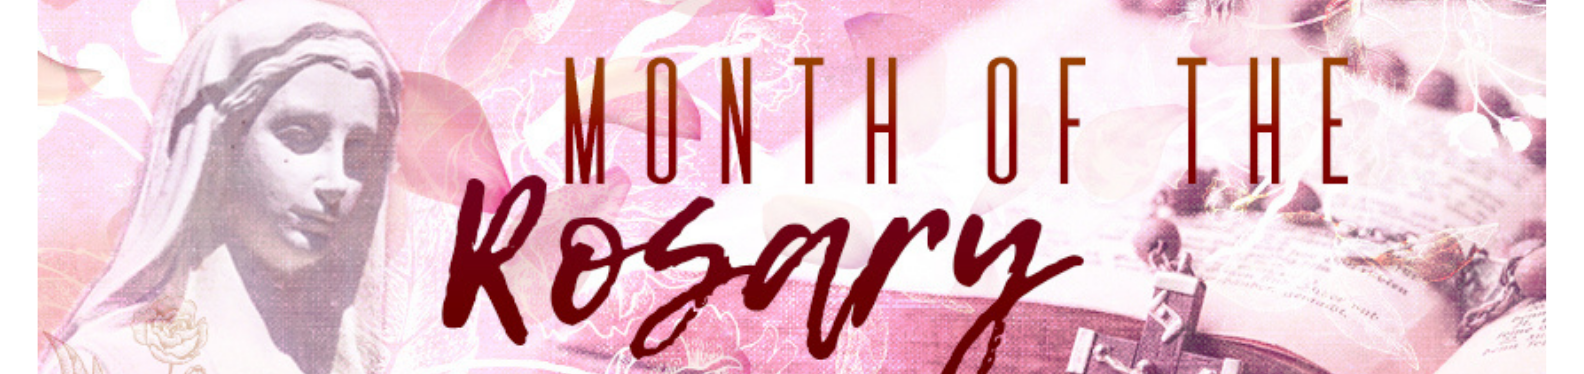 month of the rosary banner.png